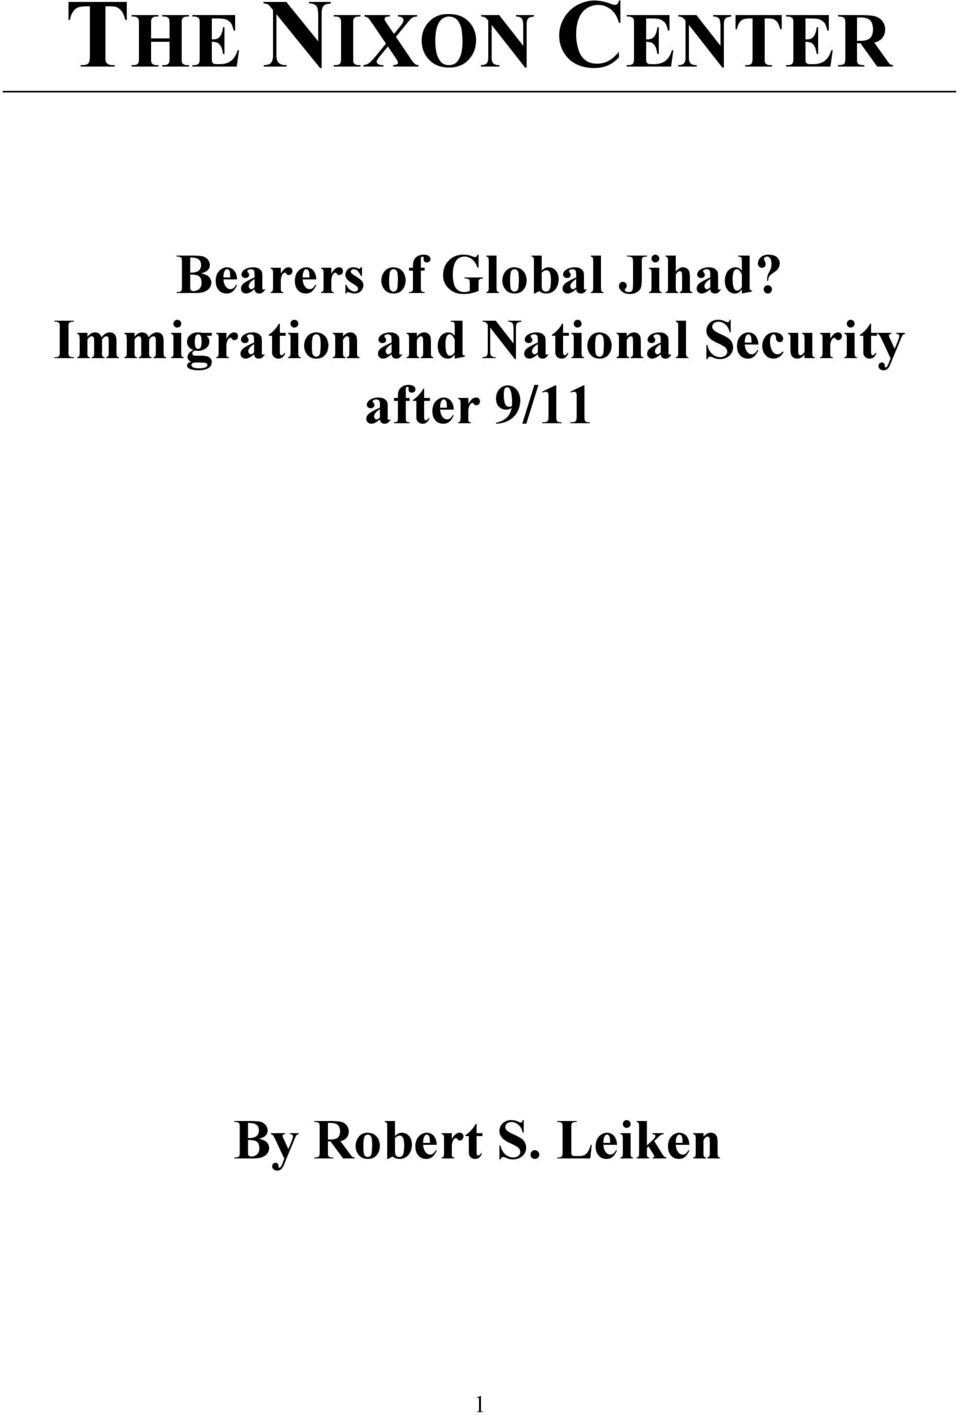 Immigration and National